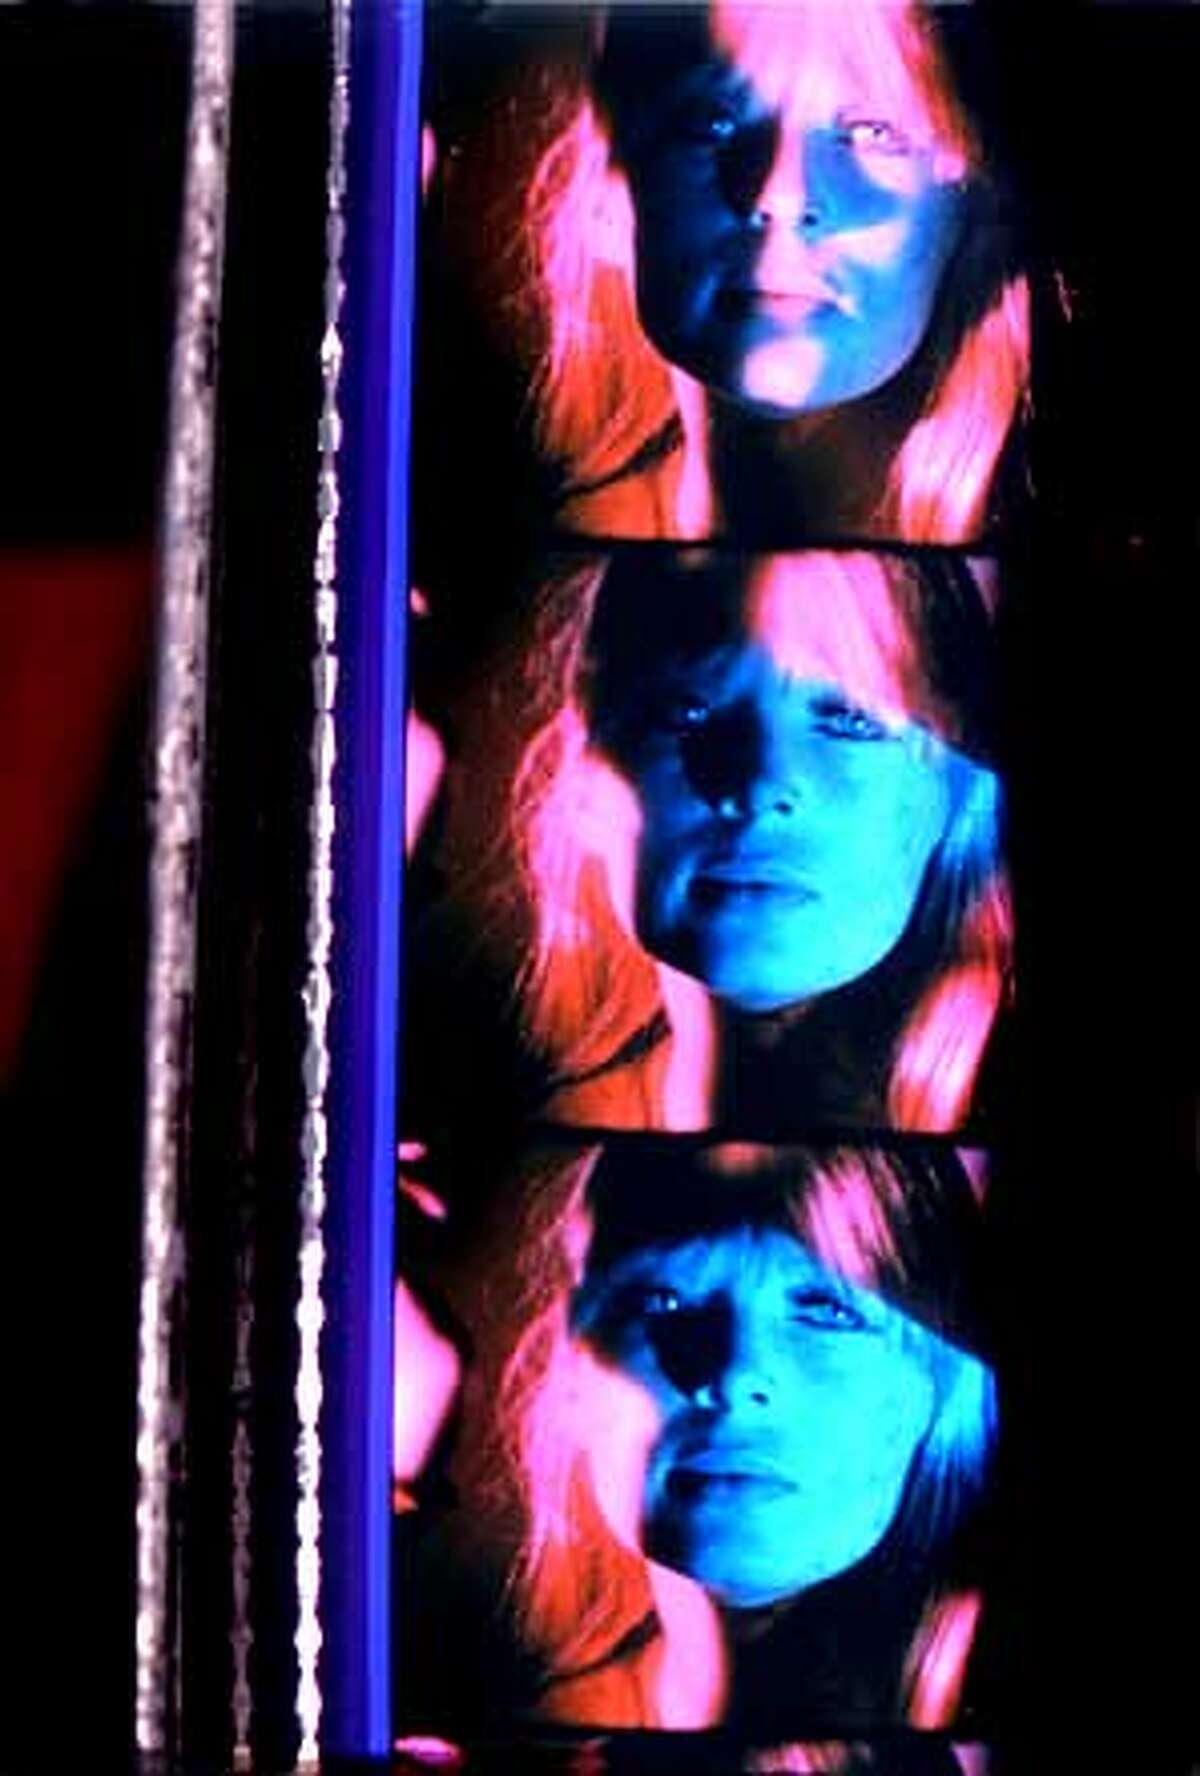 Nico in Andy Warhol's